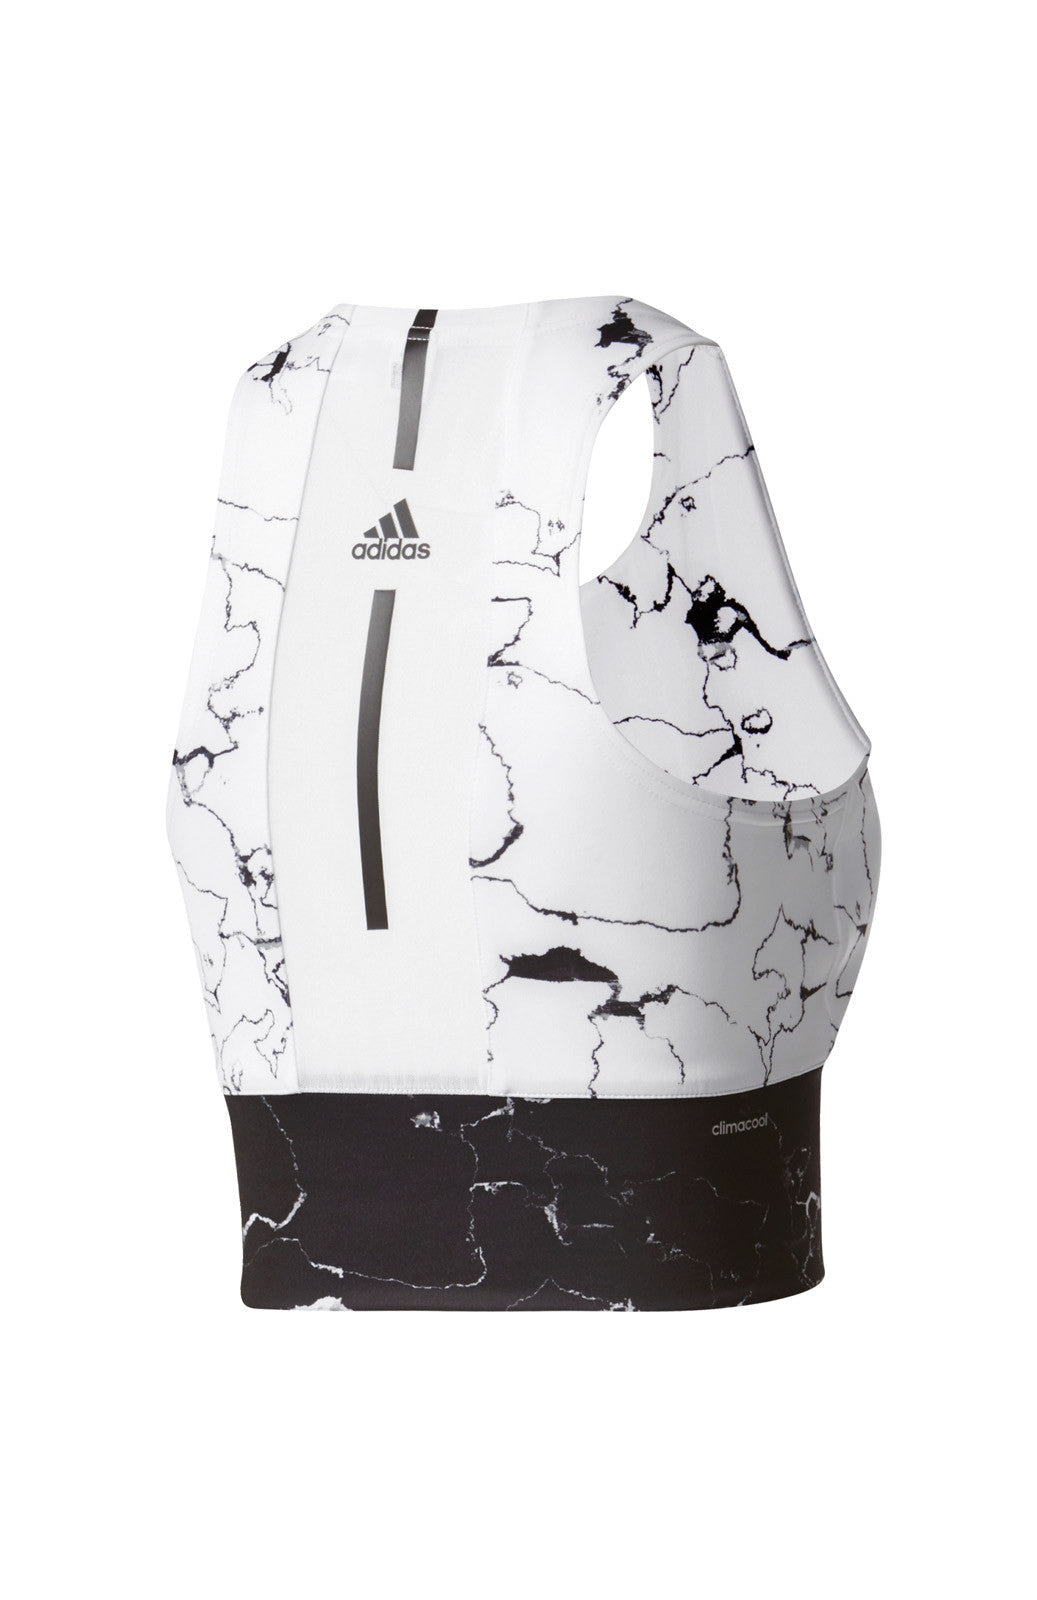 ADIDAS Marble Speed Crop Tank Top image 4 - The Sports Edit